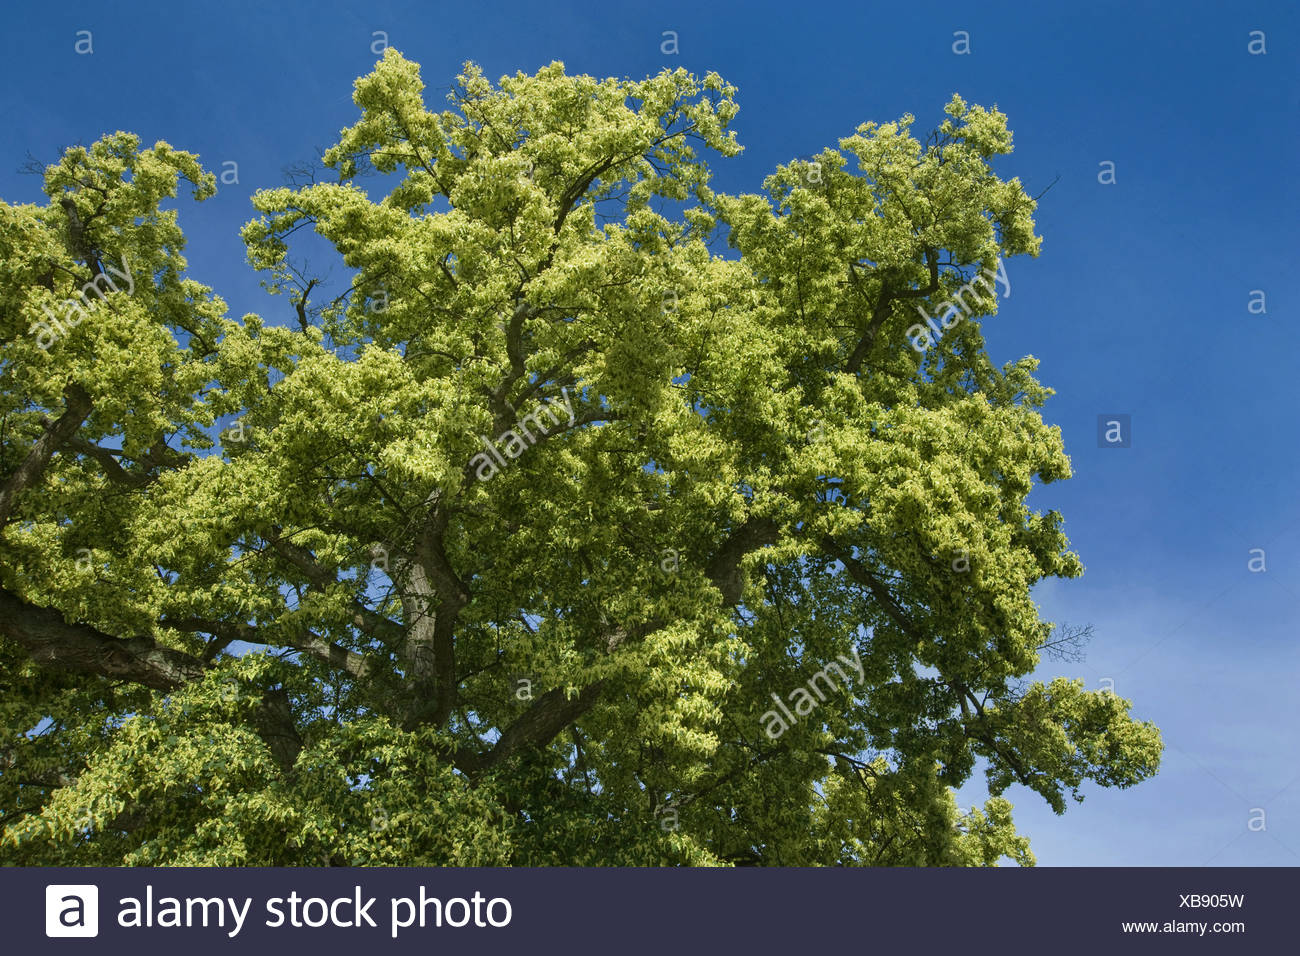 large-leaved lime, lime tree (Tilia platyphyllos), blooming, Germany - Stock Image